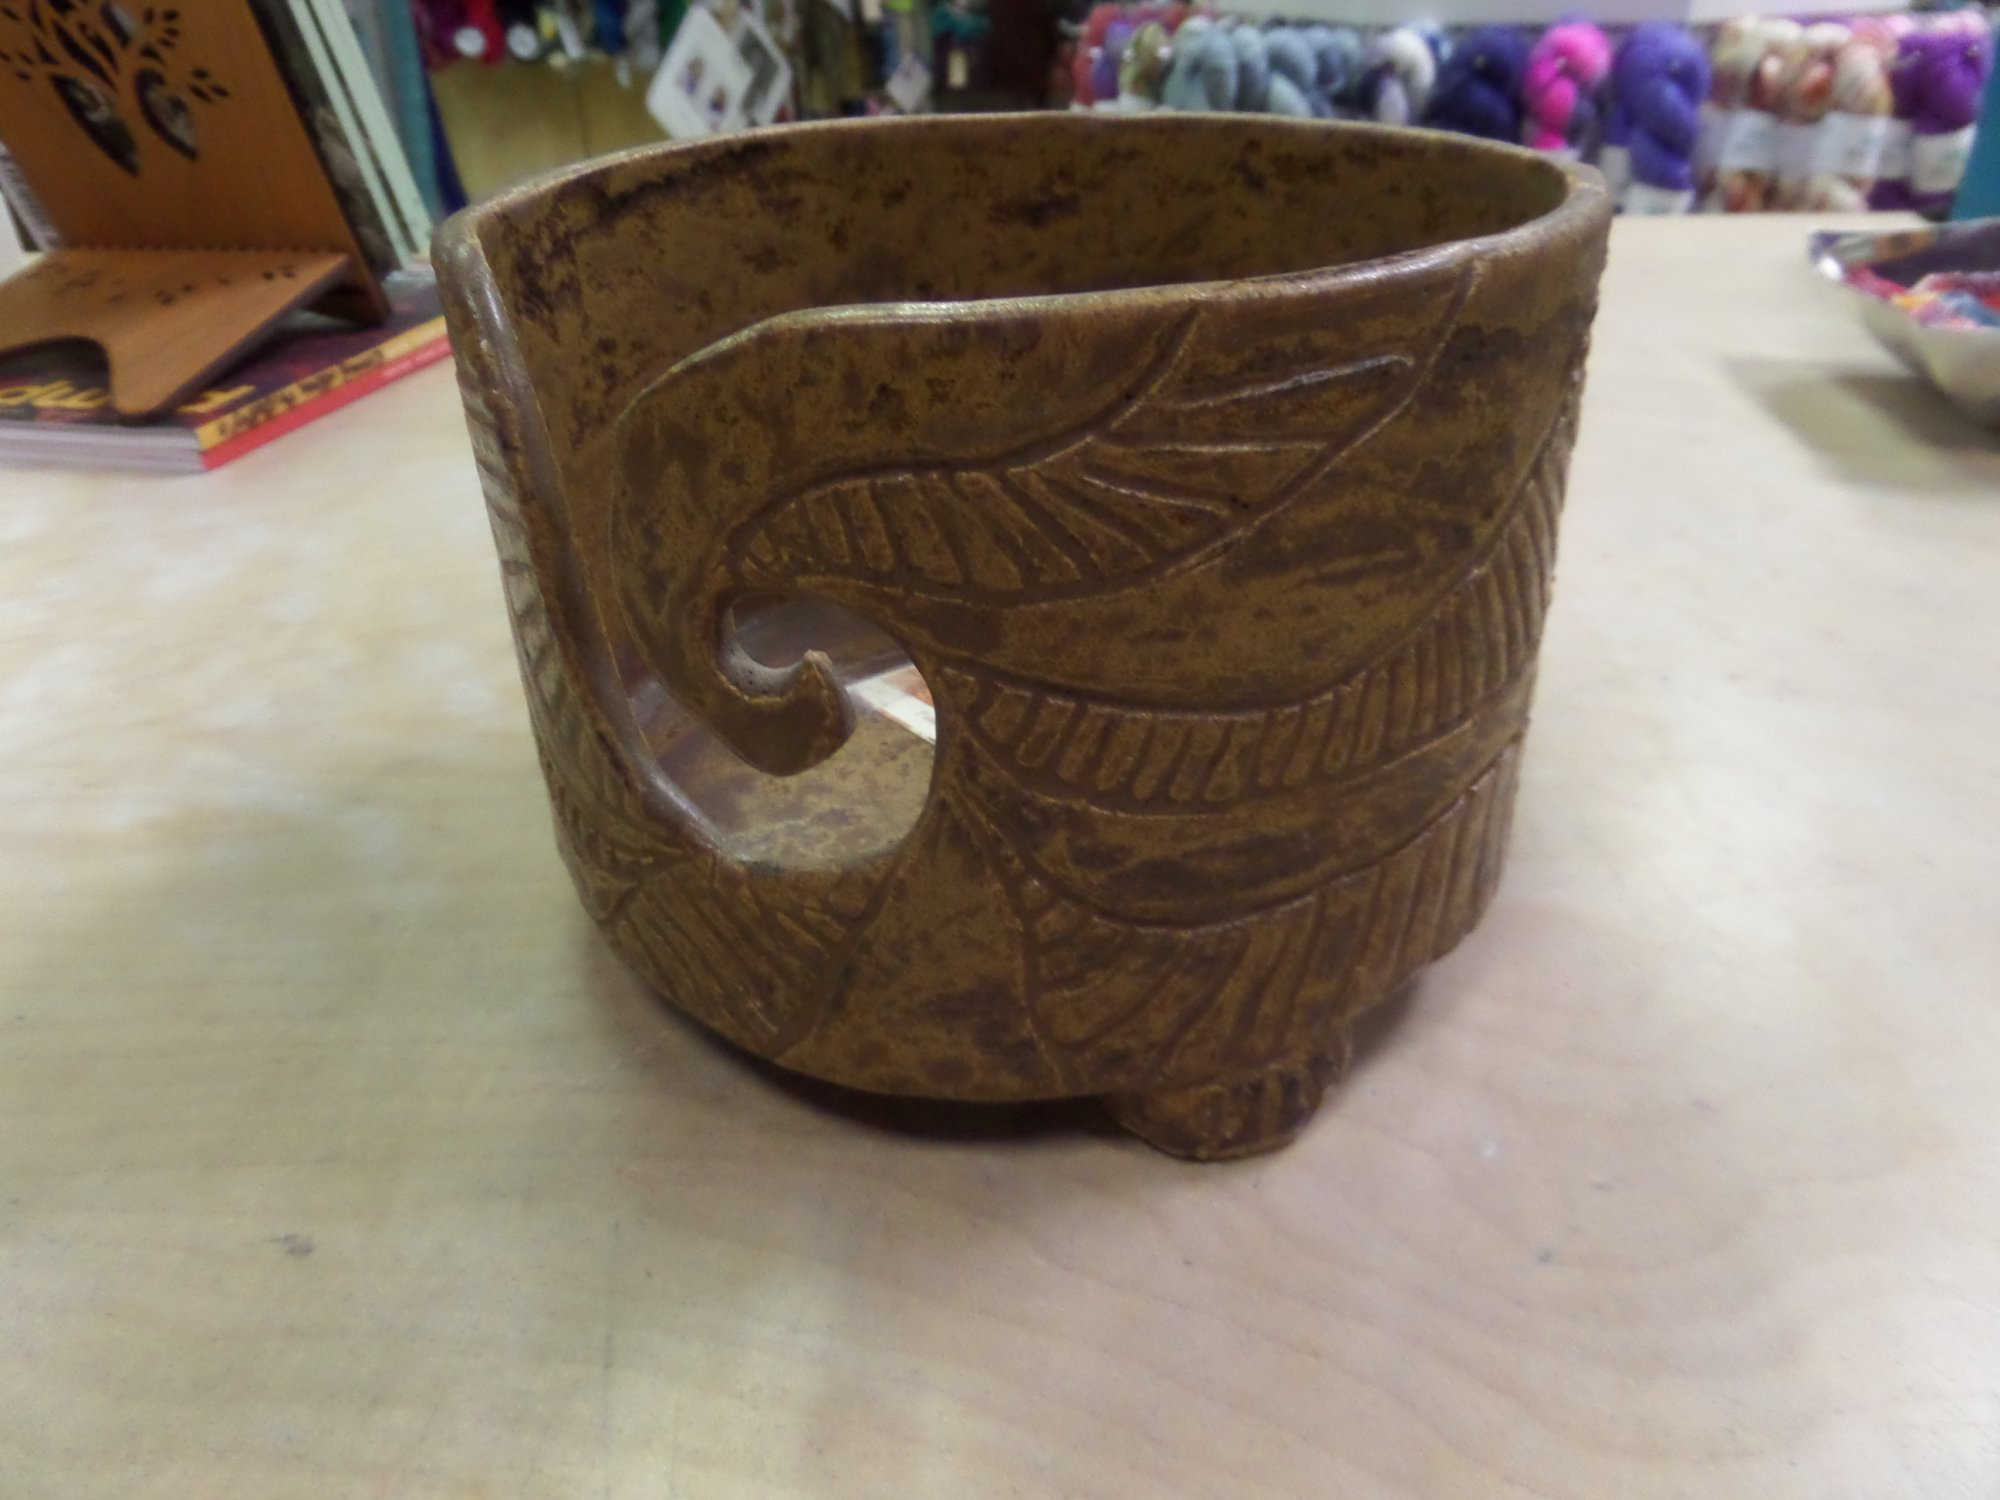 Ceramic Yarn Bowl by Karen Brown